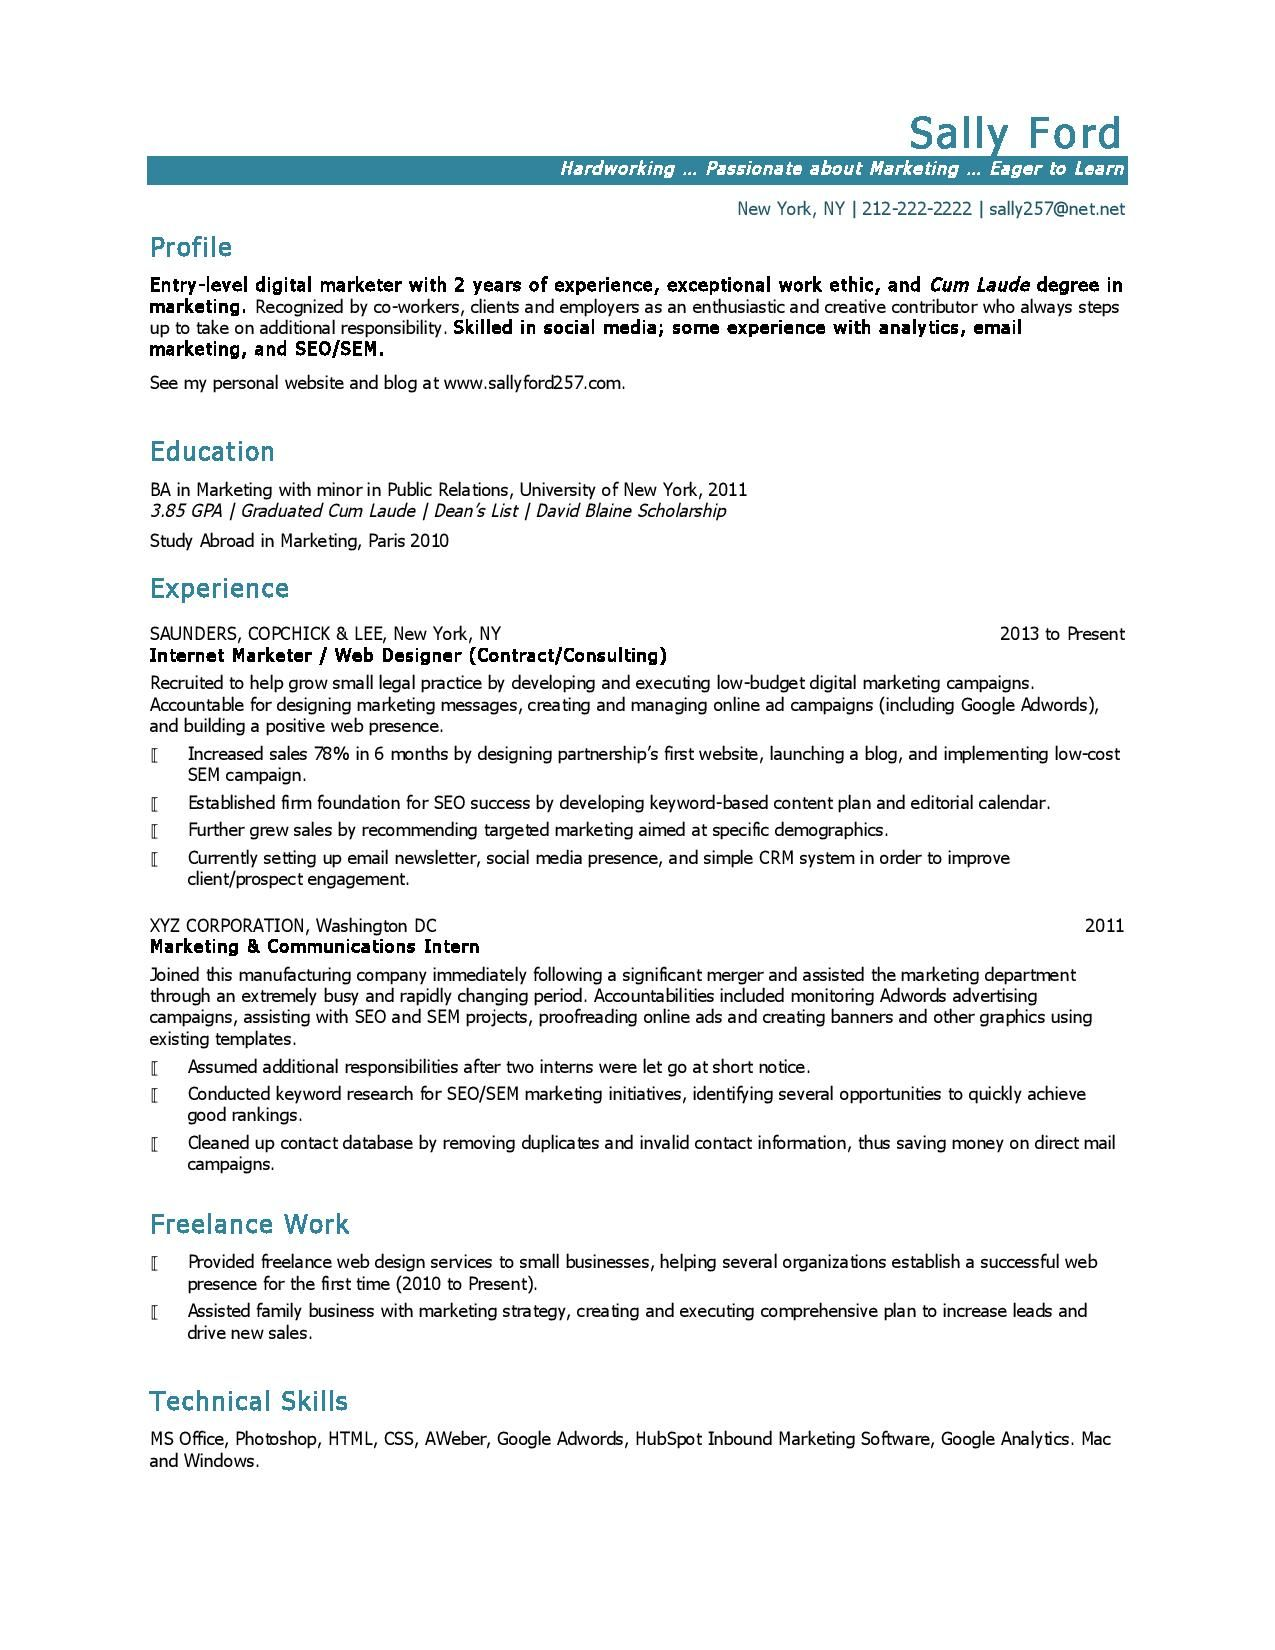 Marketing Resume Samples Hiring Managers Will Notice  Home Design